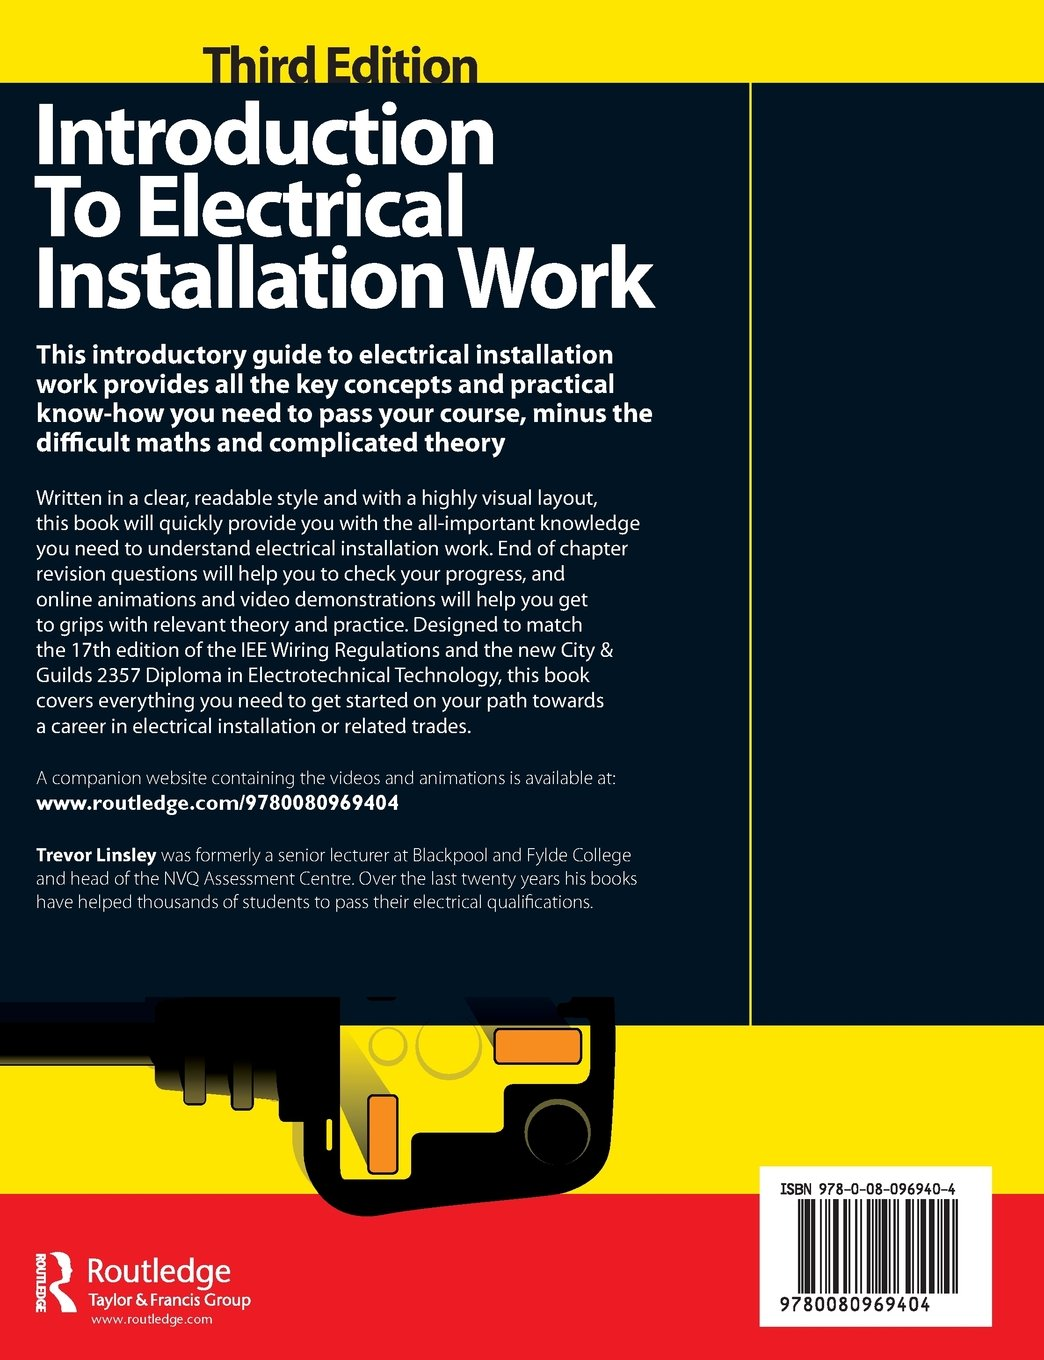 Introduction To Electrical Installation Work 3rd Ed Wiring Electric Oven Uk Free Download Diagrams Pictures Trevor Linsley 9780080969404 Books